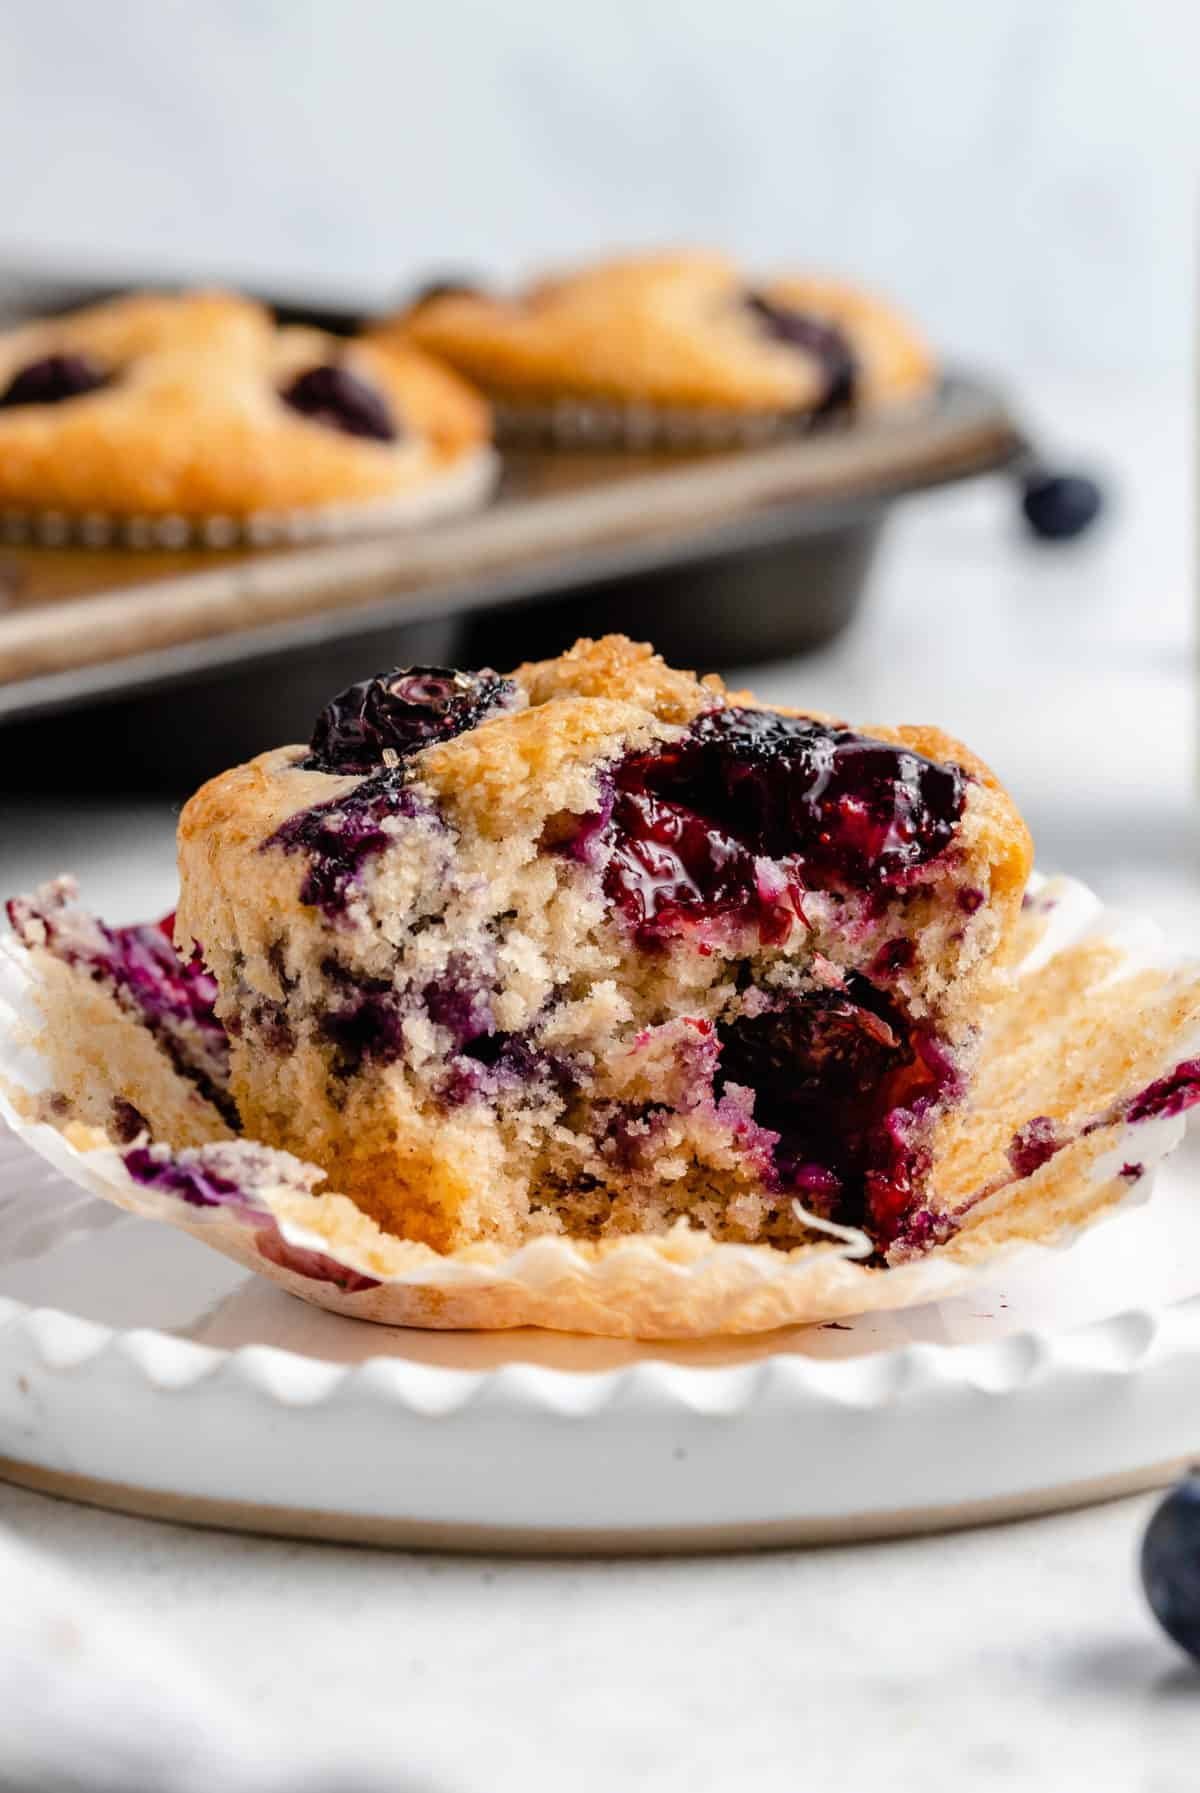 Blueberry muffin with a bite taken out of it.